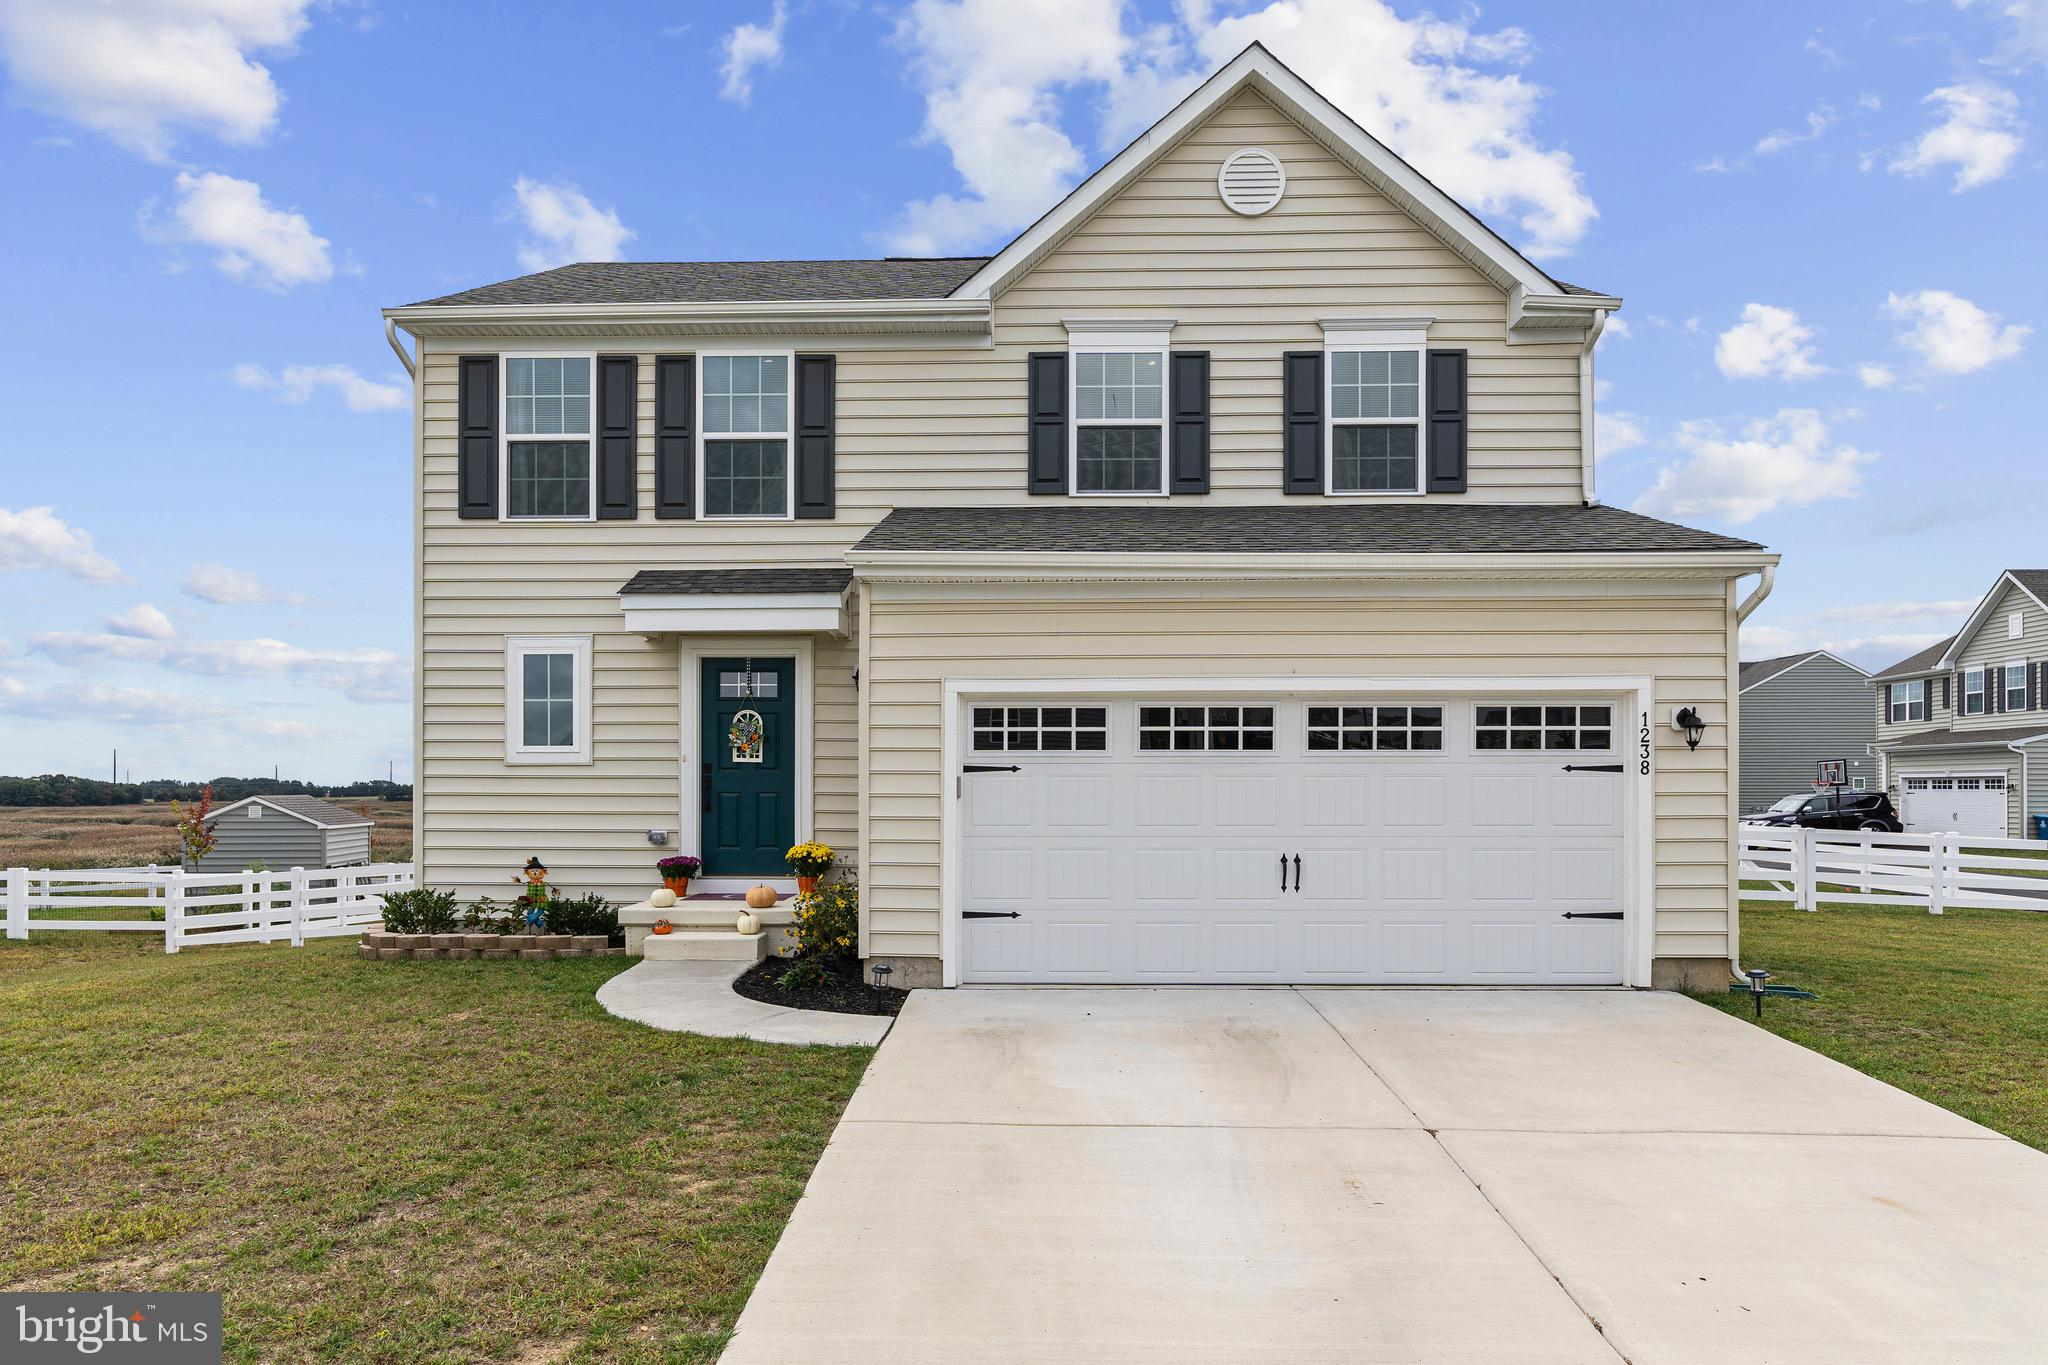 This gorgeous Sienna model will be available for showings on 10/15/2021. Schedule your showing so you don't miss out!